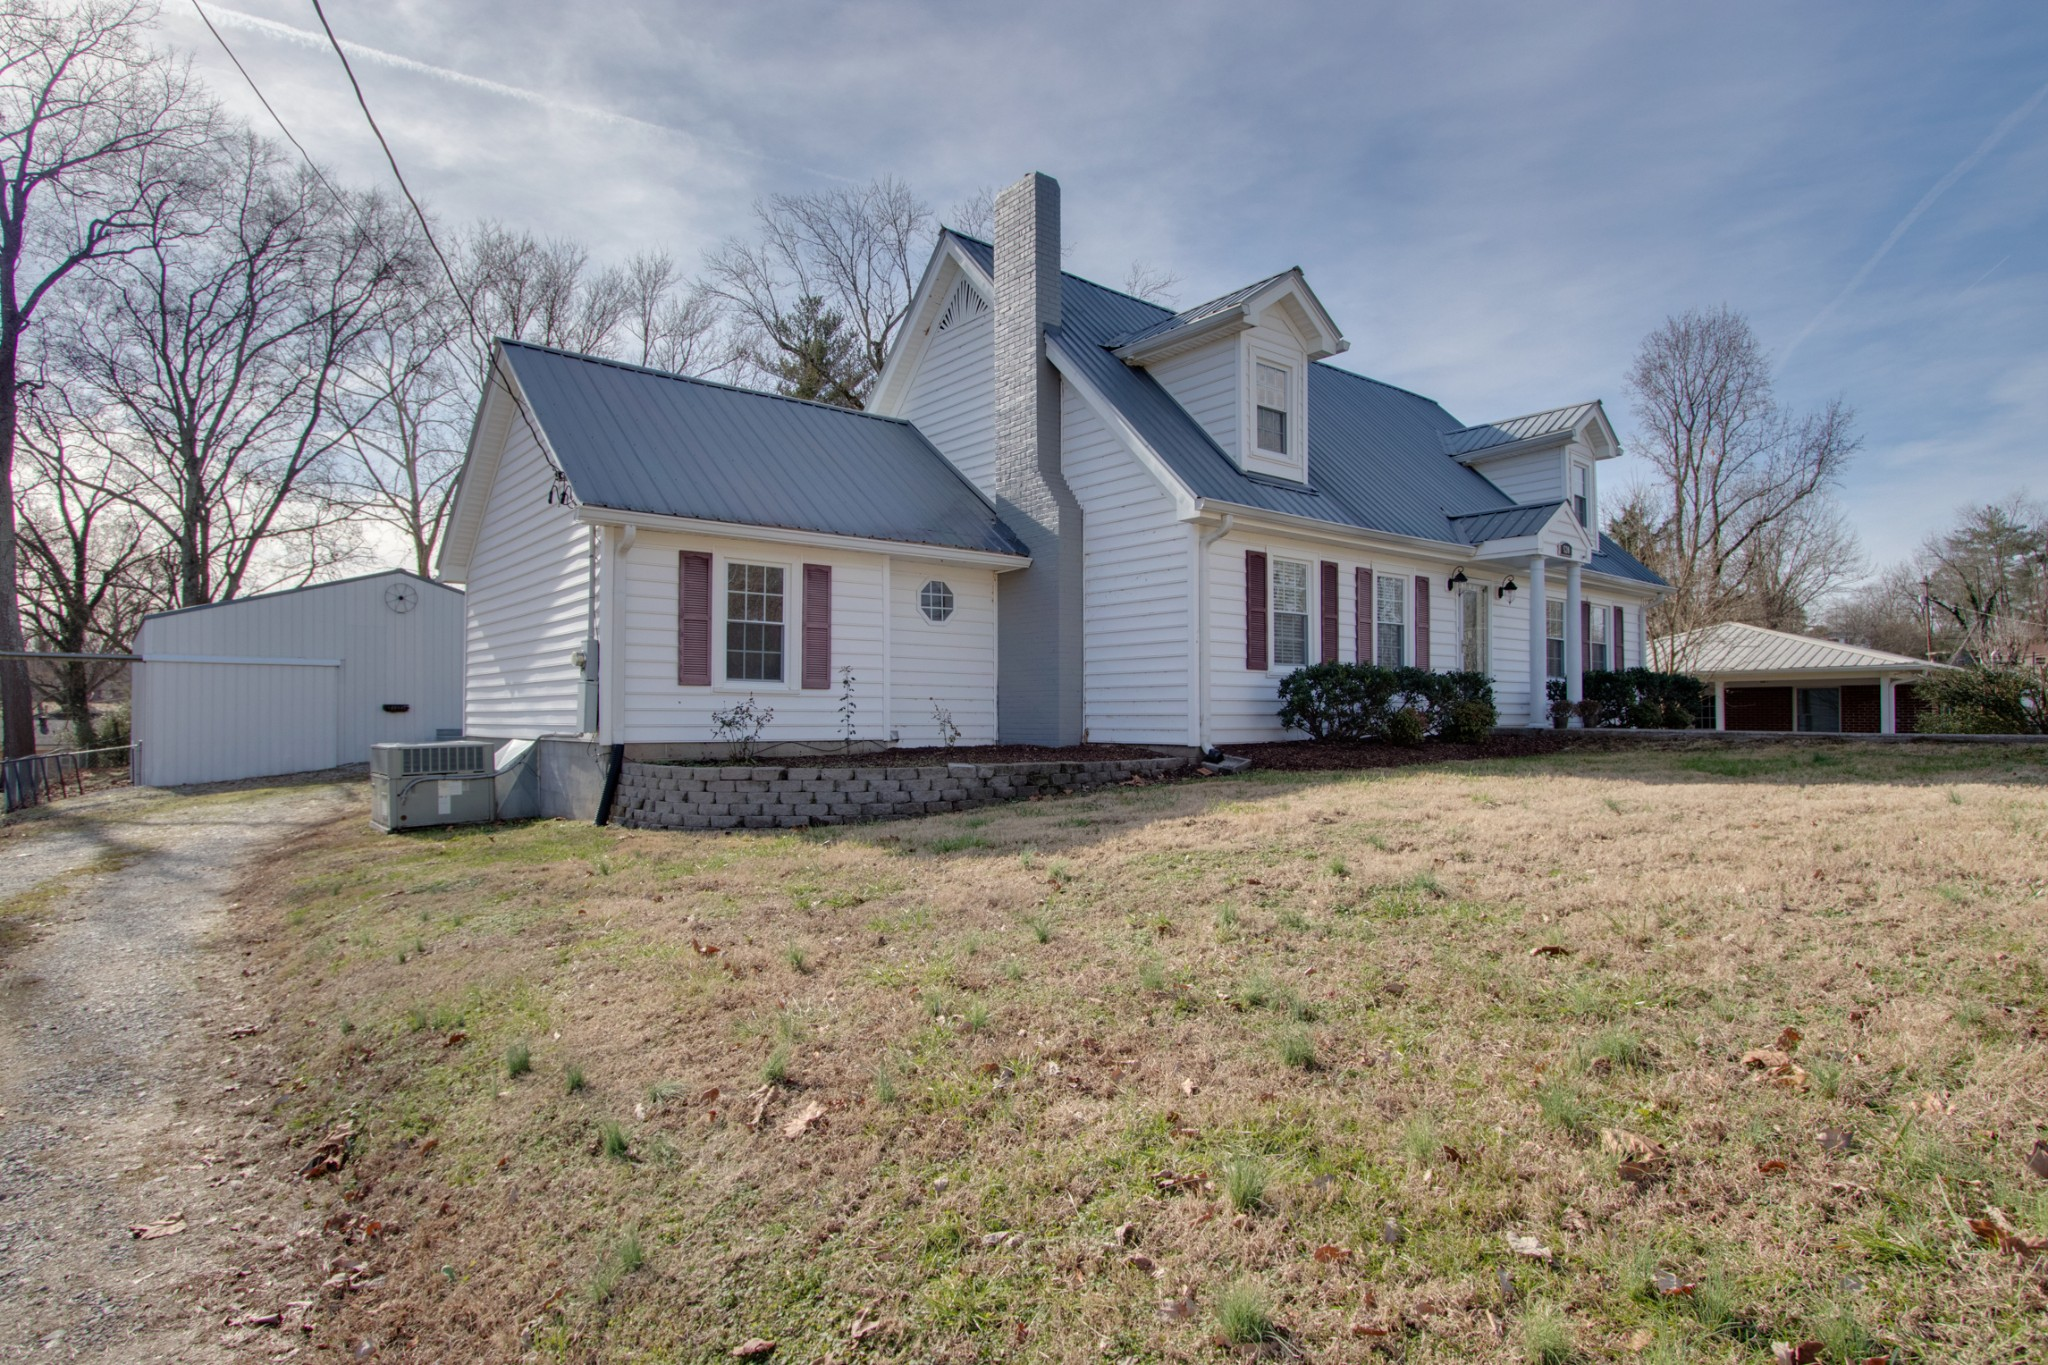 520 Jackson Ave, Carthage, TN 37030 - Carthage, TN real estate listing